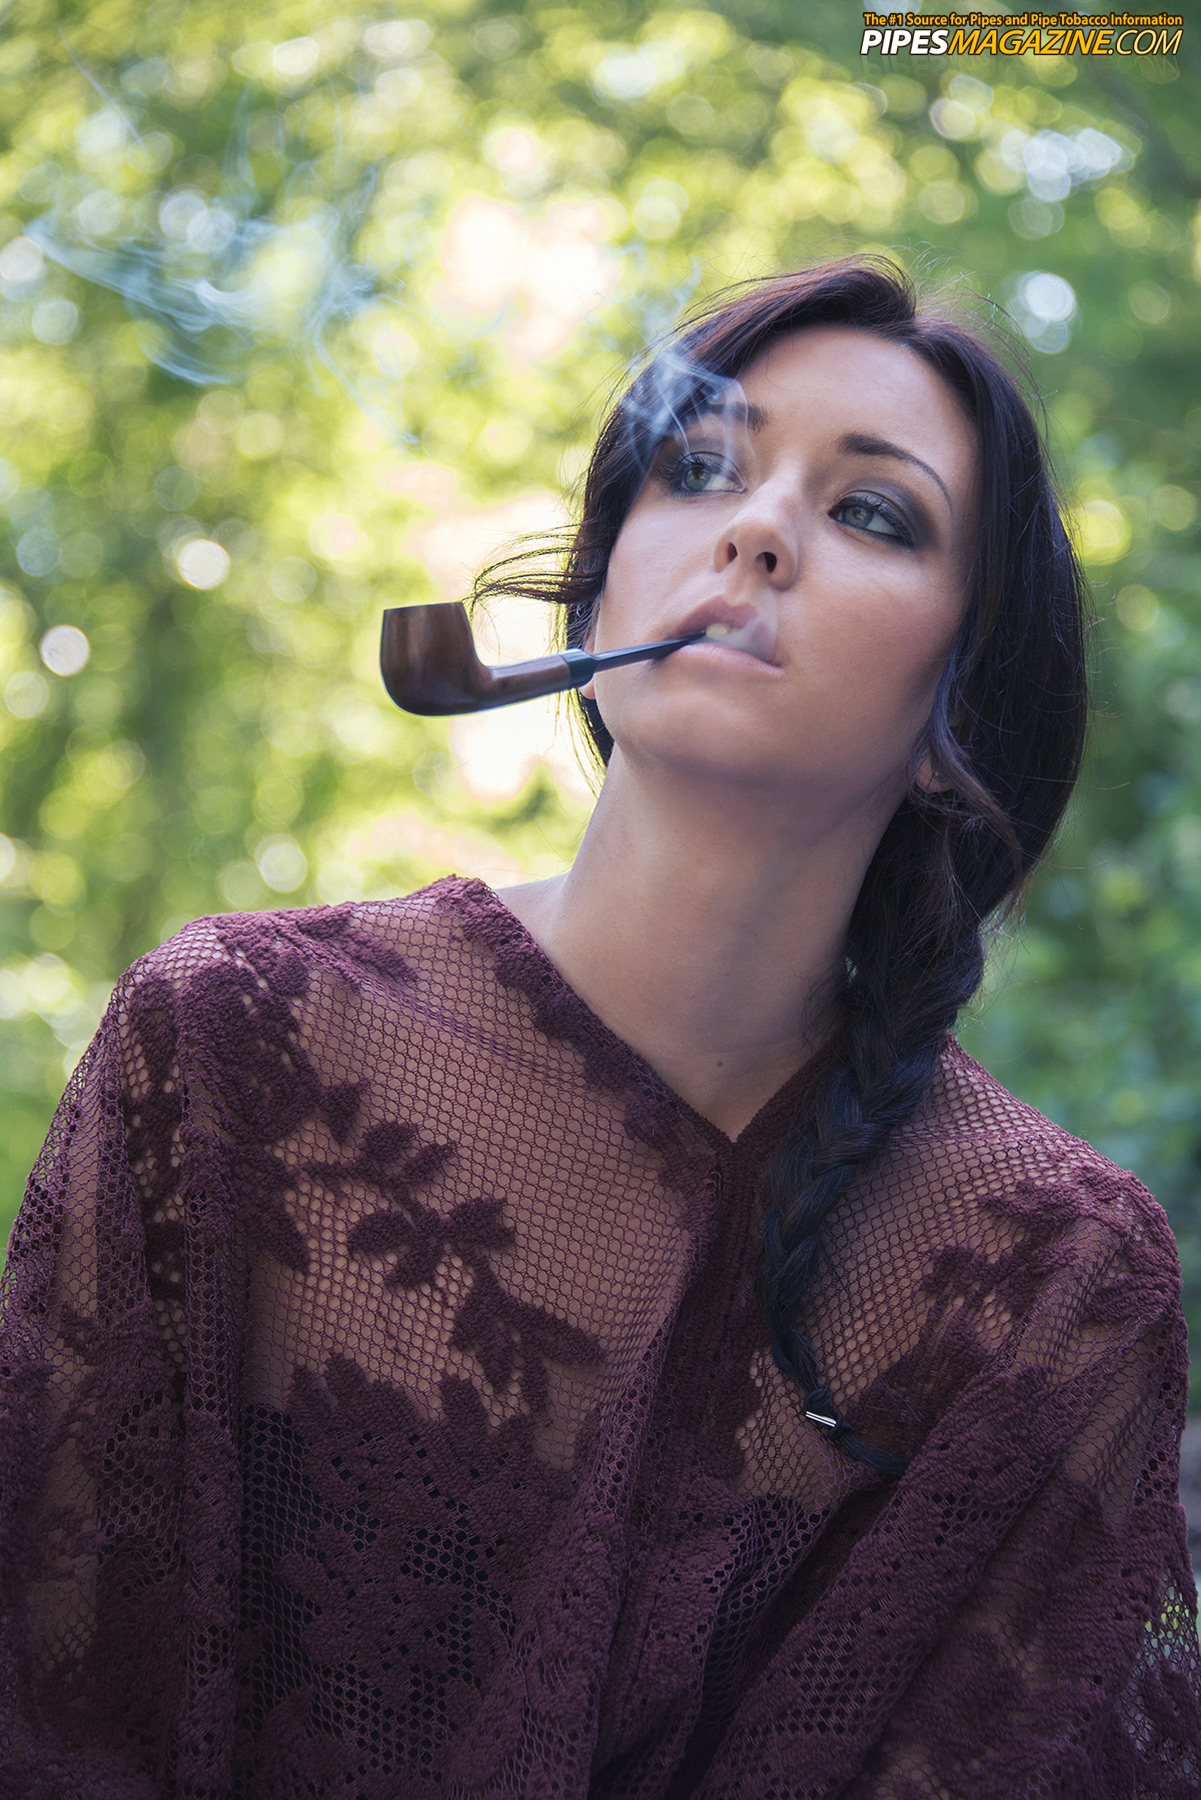 gina-roode-smoking-a-pipe-11